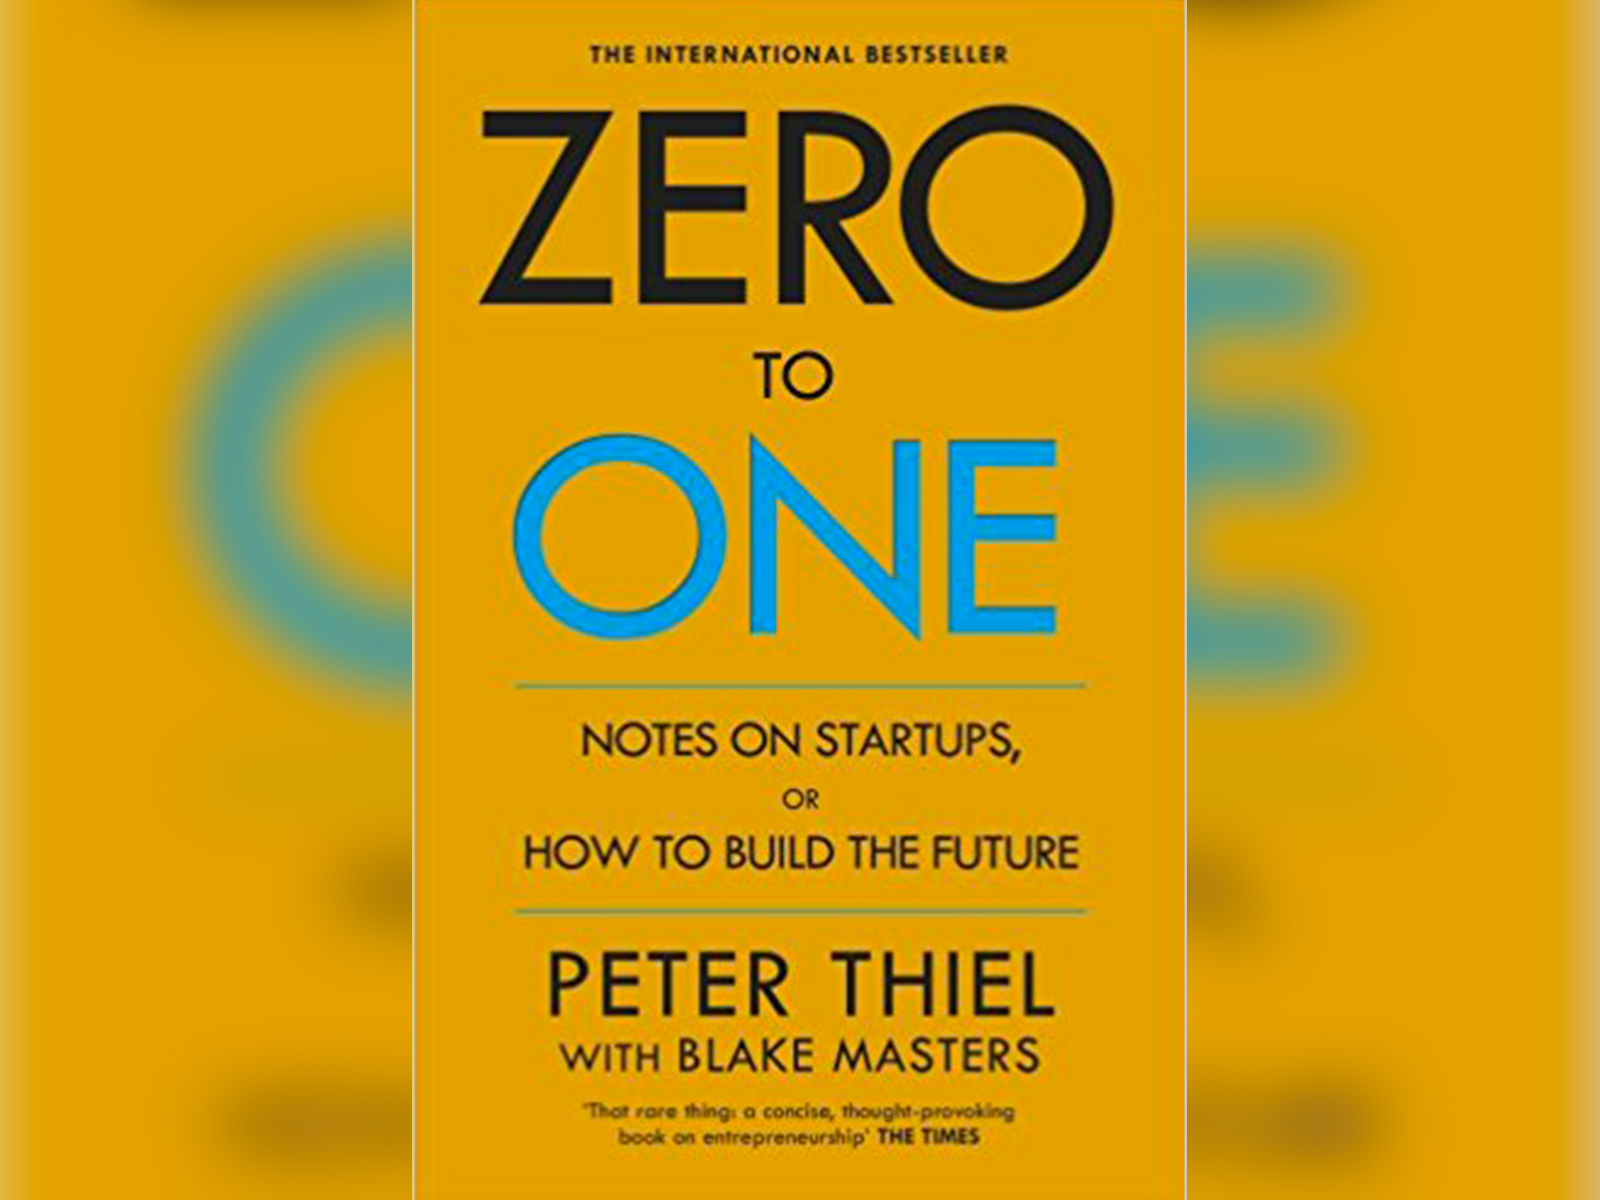 Zero to One by Peter Thiel and Blake Masters - Book Review